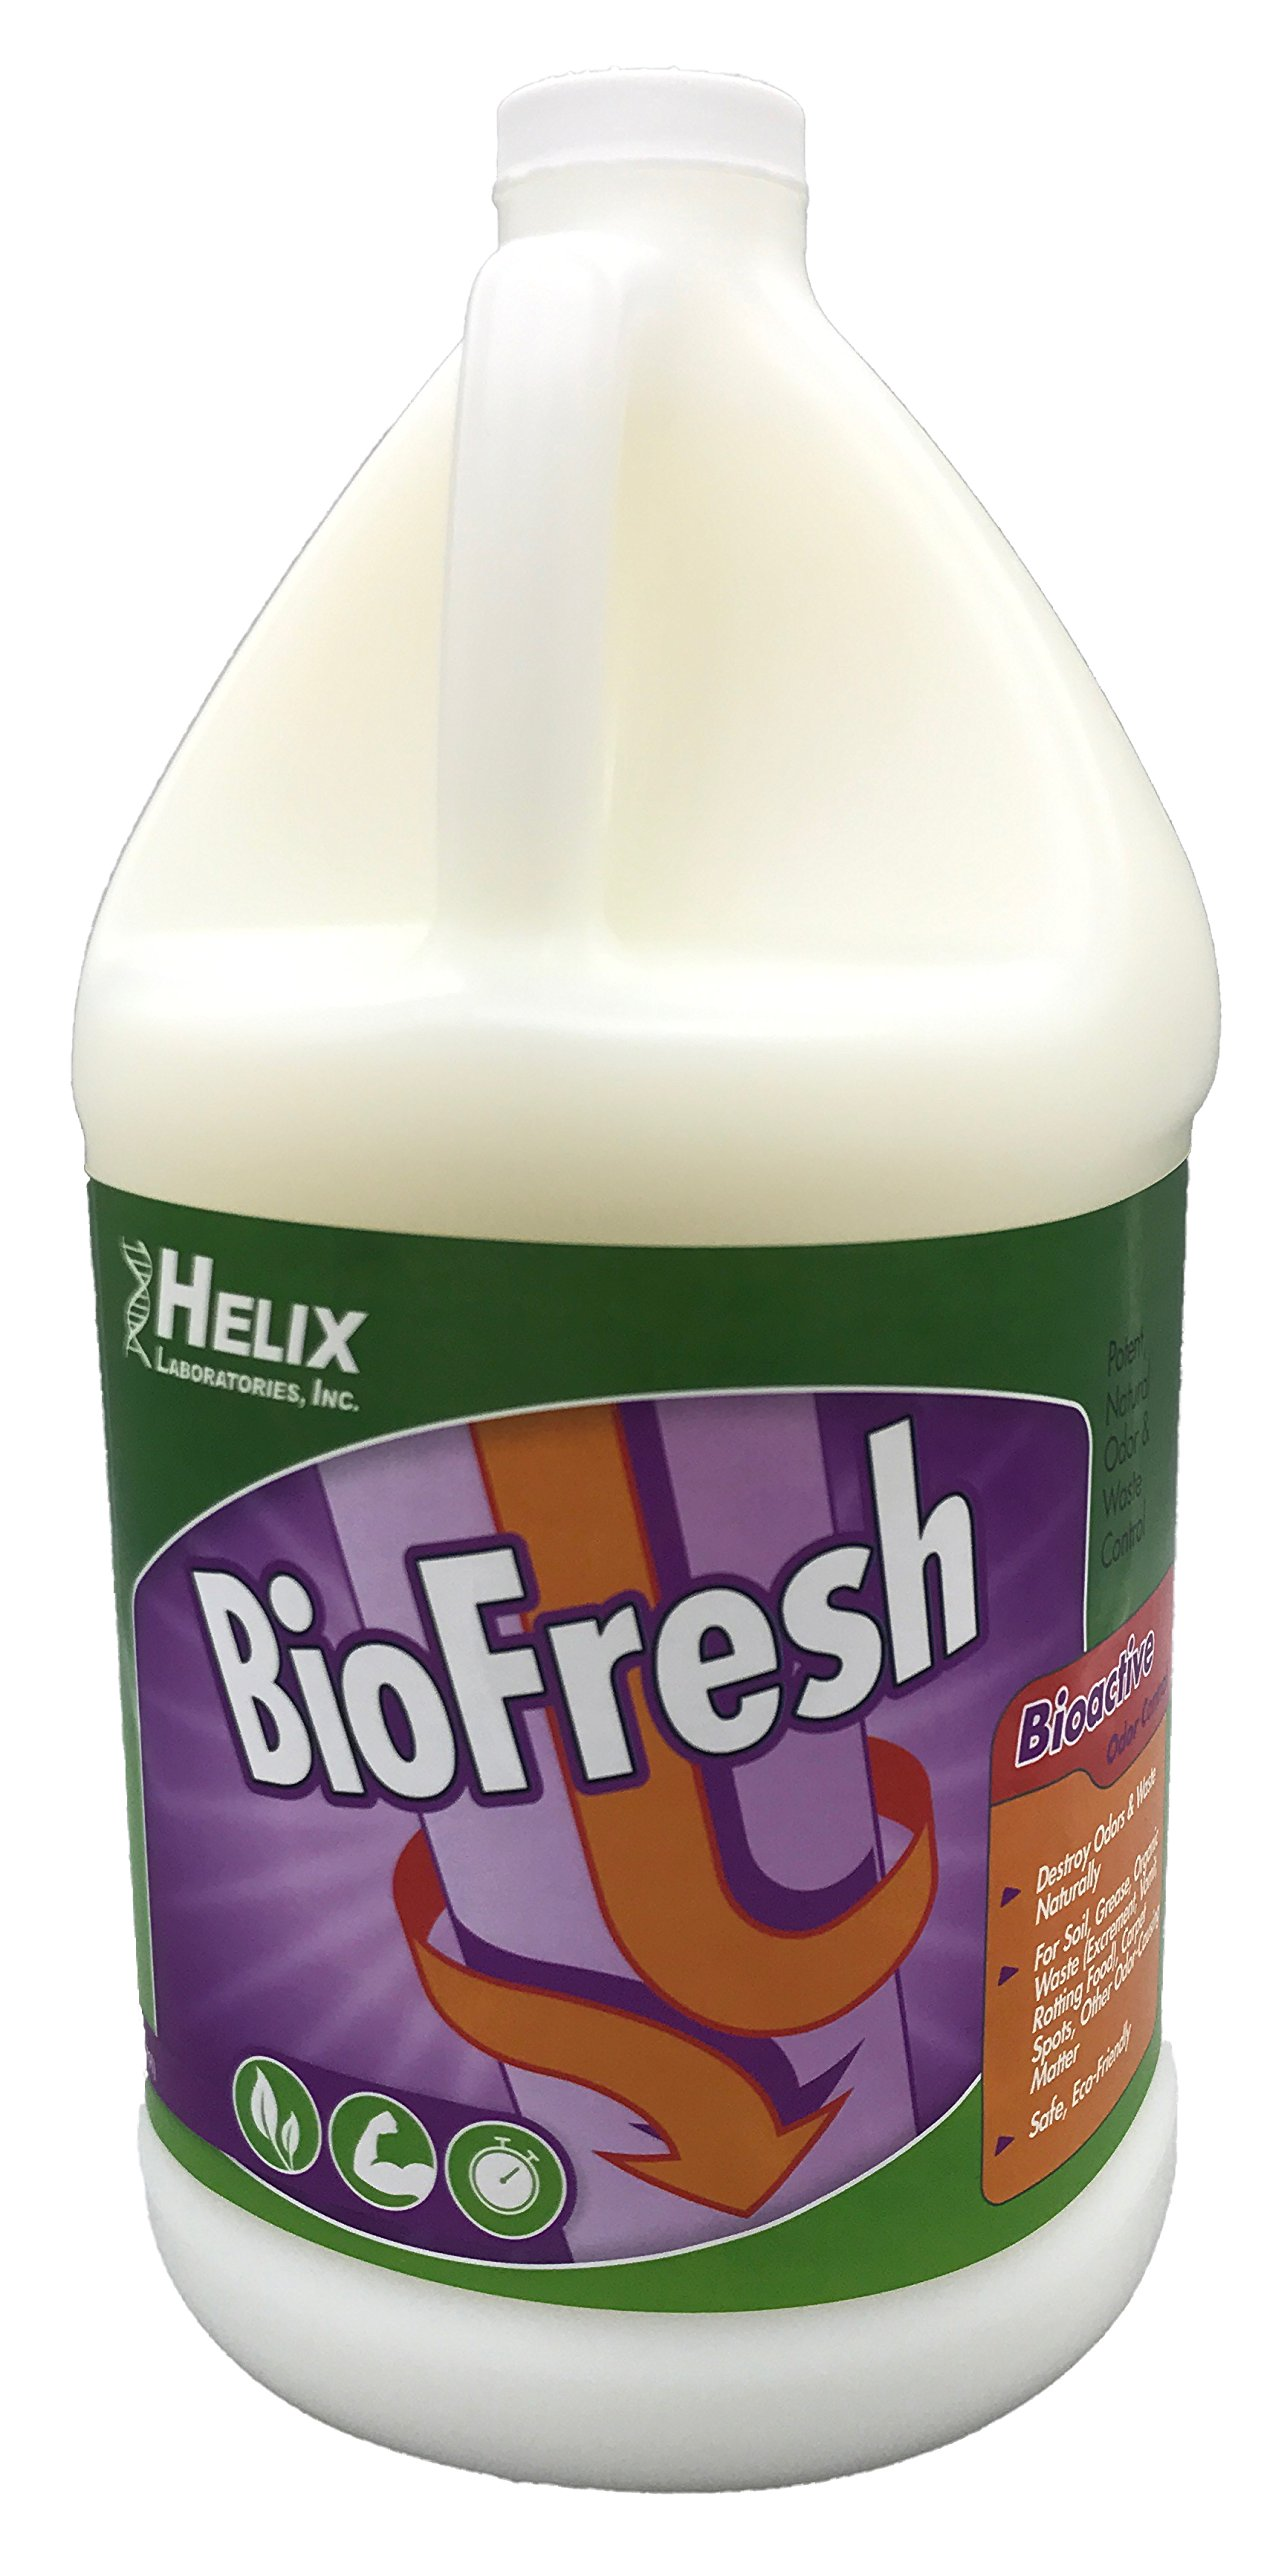 BioFresh - Enzyme Drain Cleaner & Odor Eliminator. Deodorizes and Unclogs Smelly Garbage Disposals, Washing Machines and Slow Drains. Super Concentrate w/Pleasant Fragrance (1 Gallon)